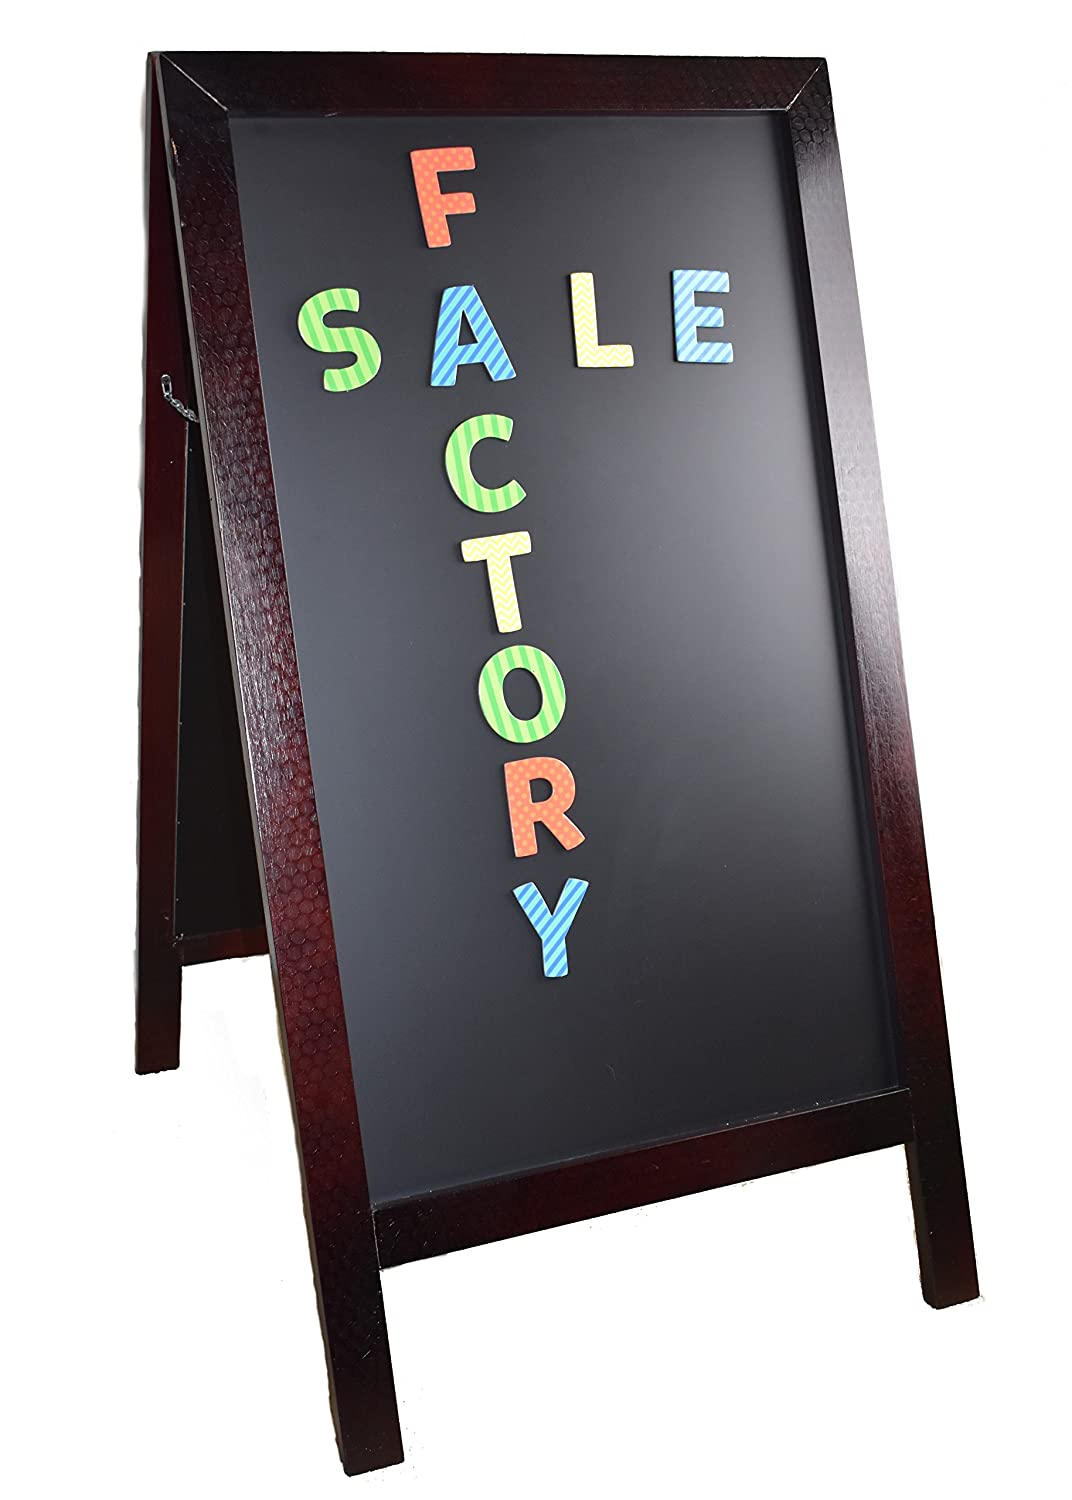 """(FACTORY BLEMISH) COMPONO 42"""" x 24"""" A-Frame Wooden Sidewalk Chalkboard. âš¡ MAGNETIC âš¡ Perfect Blackboard for Restaurants, Bars and Shops. Robust Indoor and Outdoor Sign Ideal for Chalk Markers."""